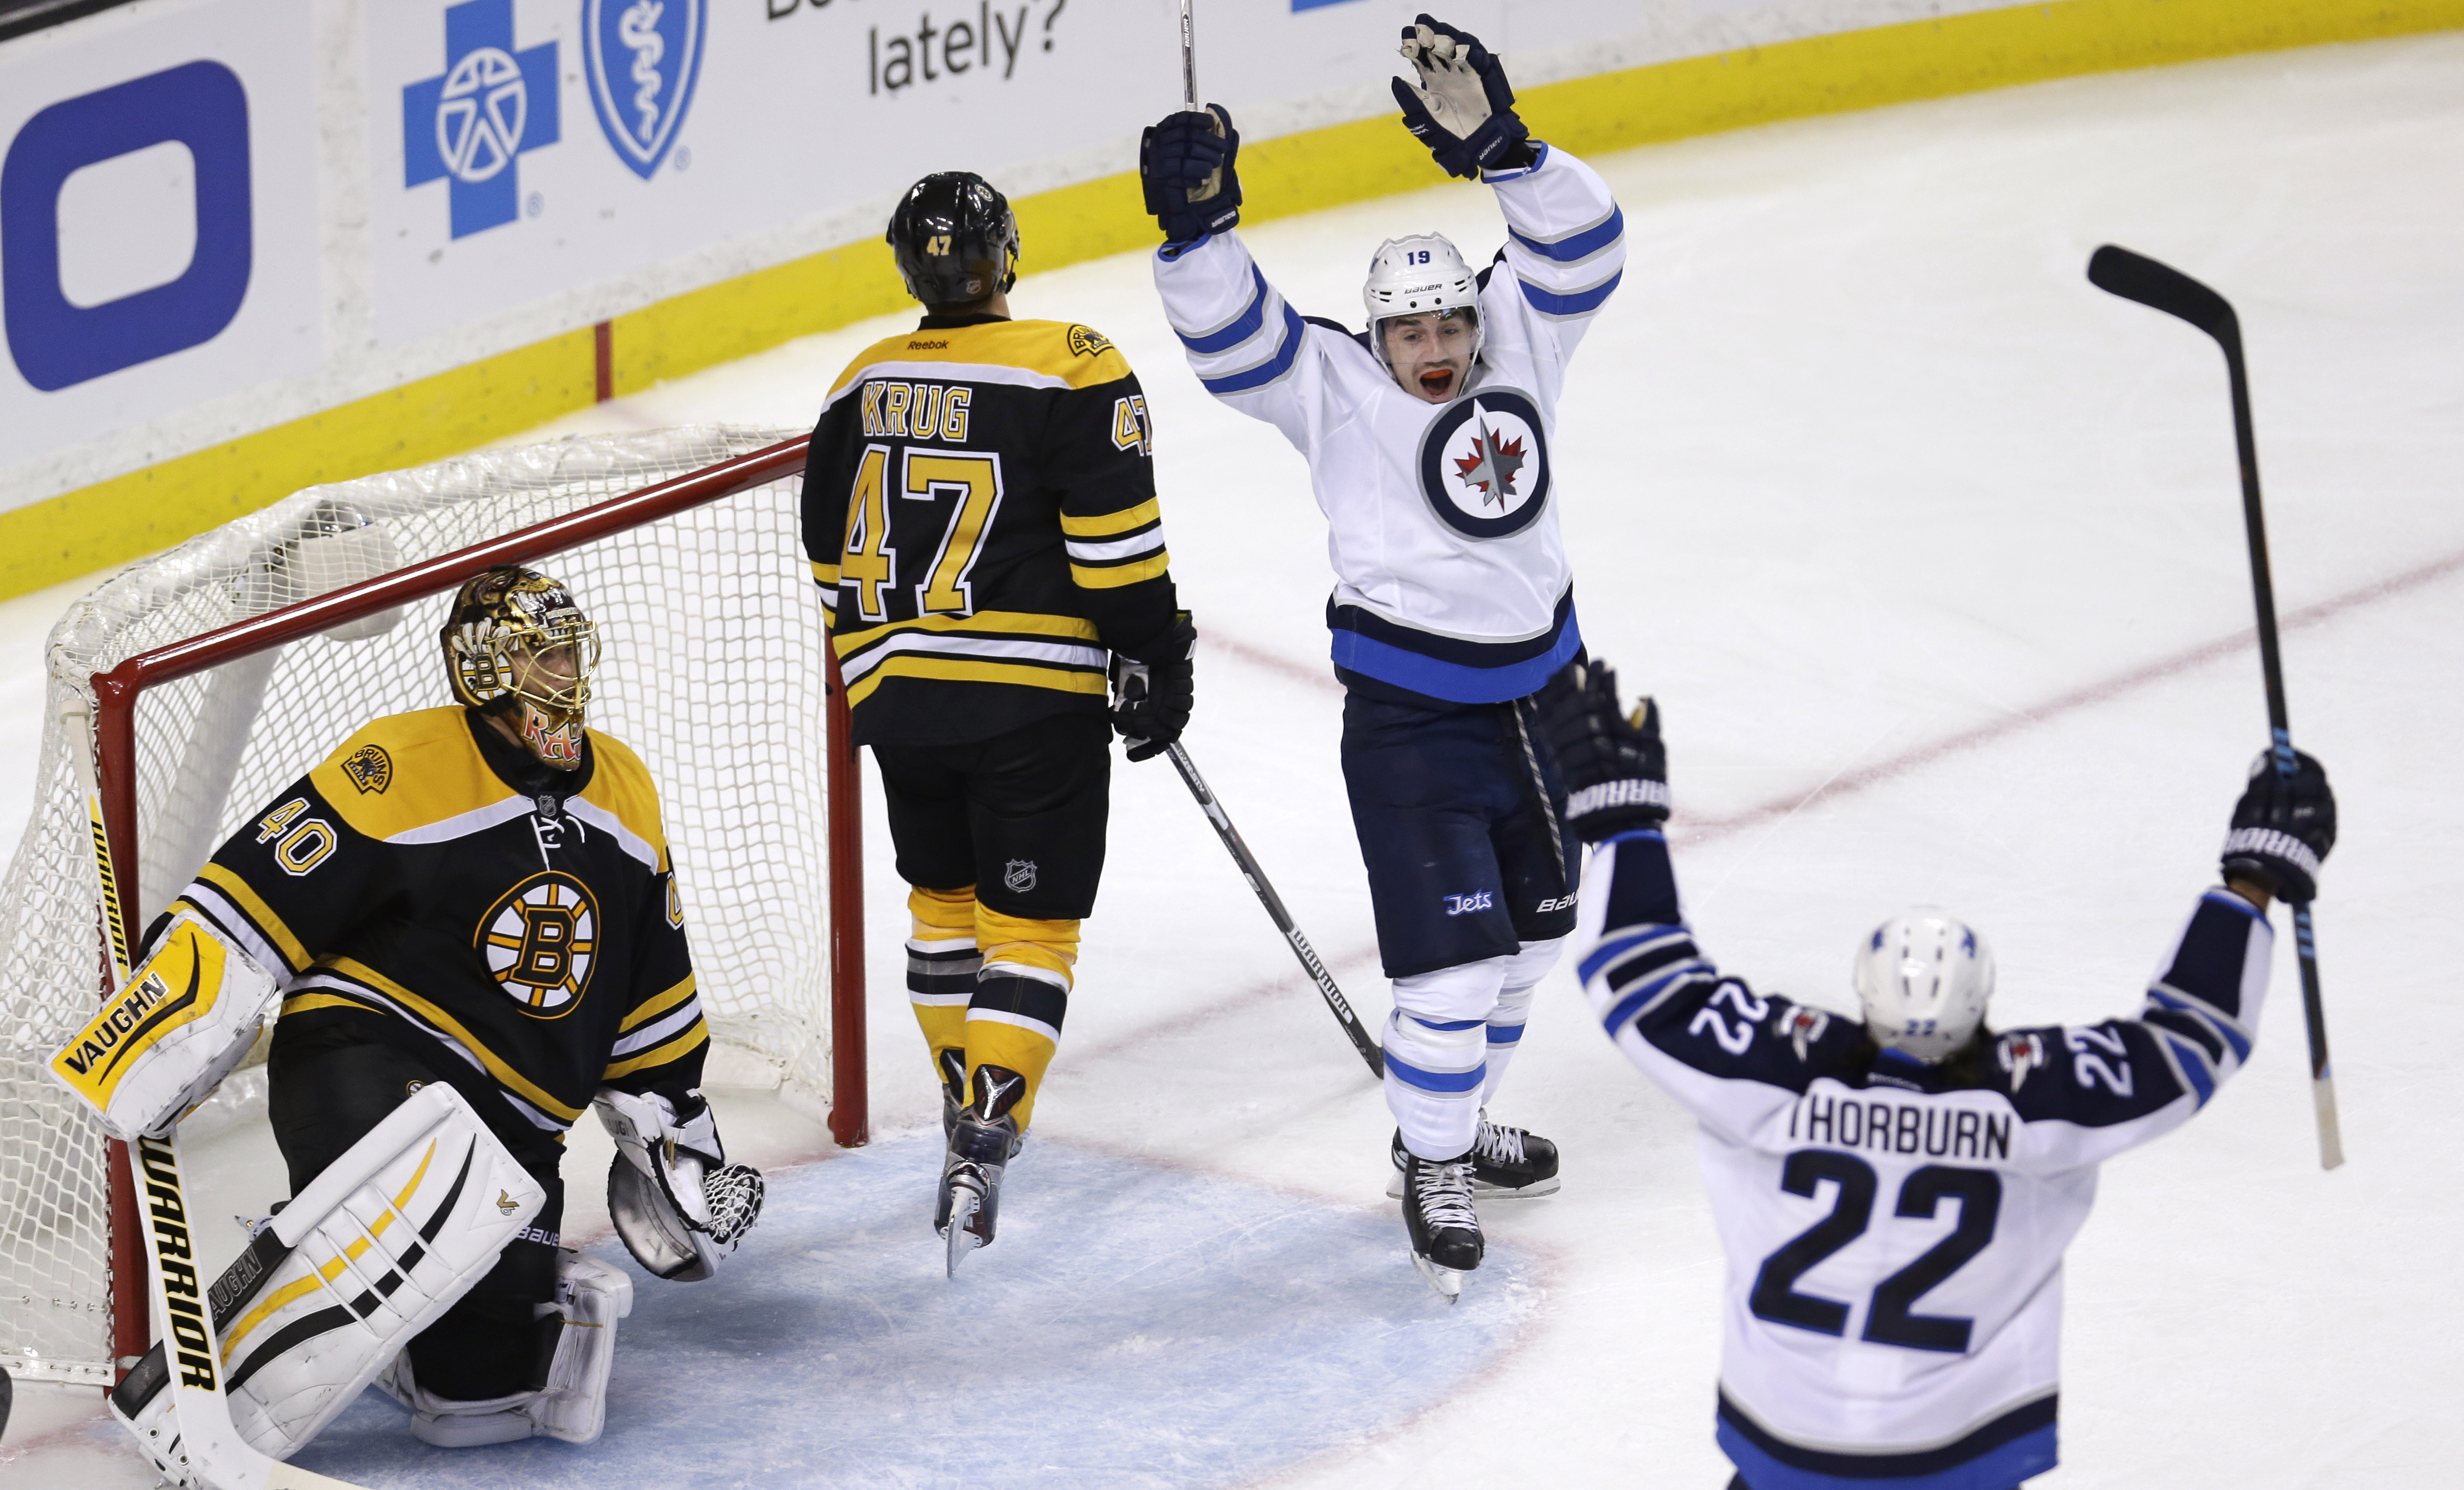 Winnipeg Jets center Nicolas Petan, second from right, celebrates with teammate Chris Thorburn (22) after his goal against Boston Bruins goalie Tuukka Rask, left, of Finland, during the third period of an NHL hockey game in Boston, Thursday, Oct. 8, 2015.